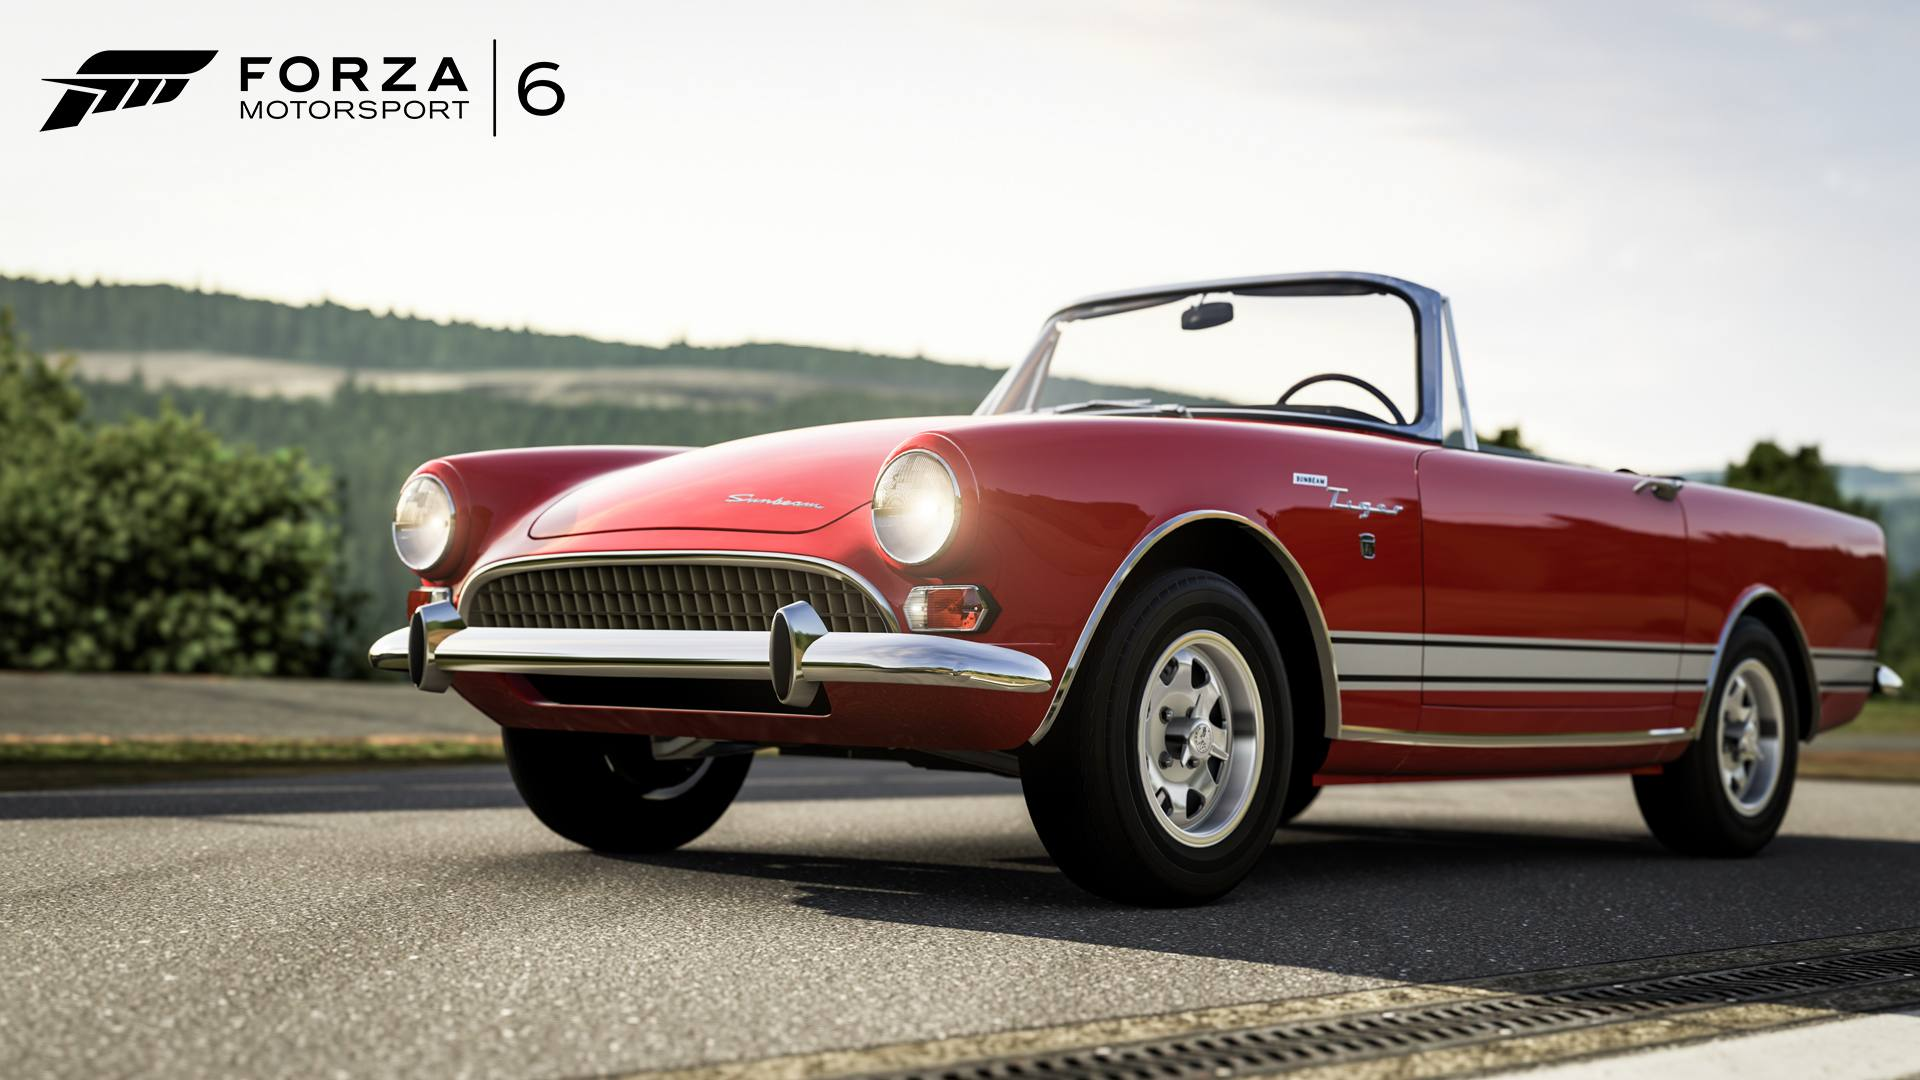 Forza Motorsport 6 27-01-16 1967 Sunbeam Tiger